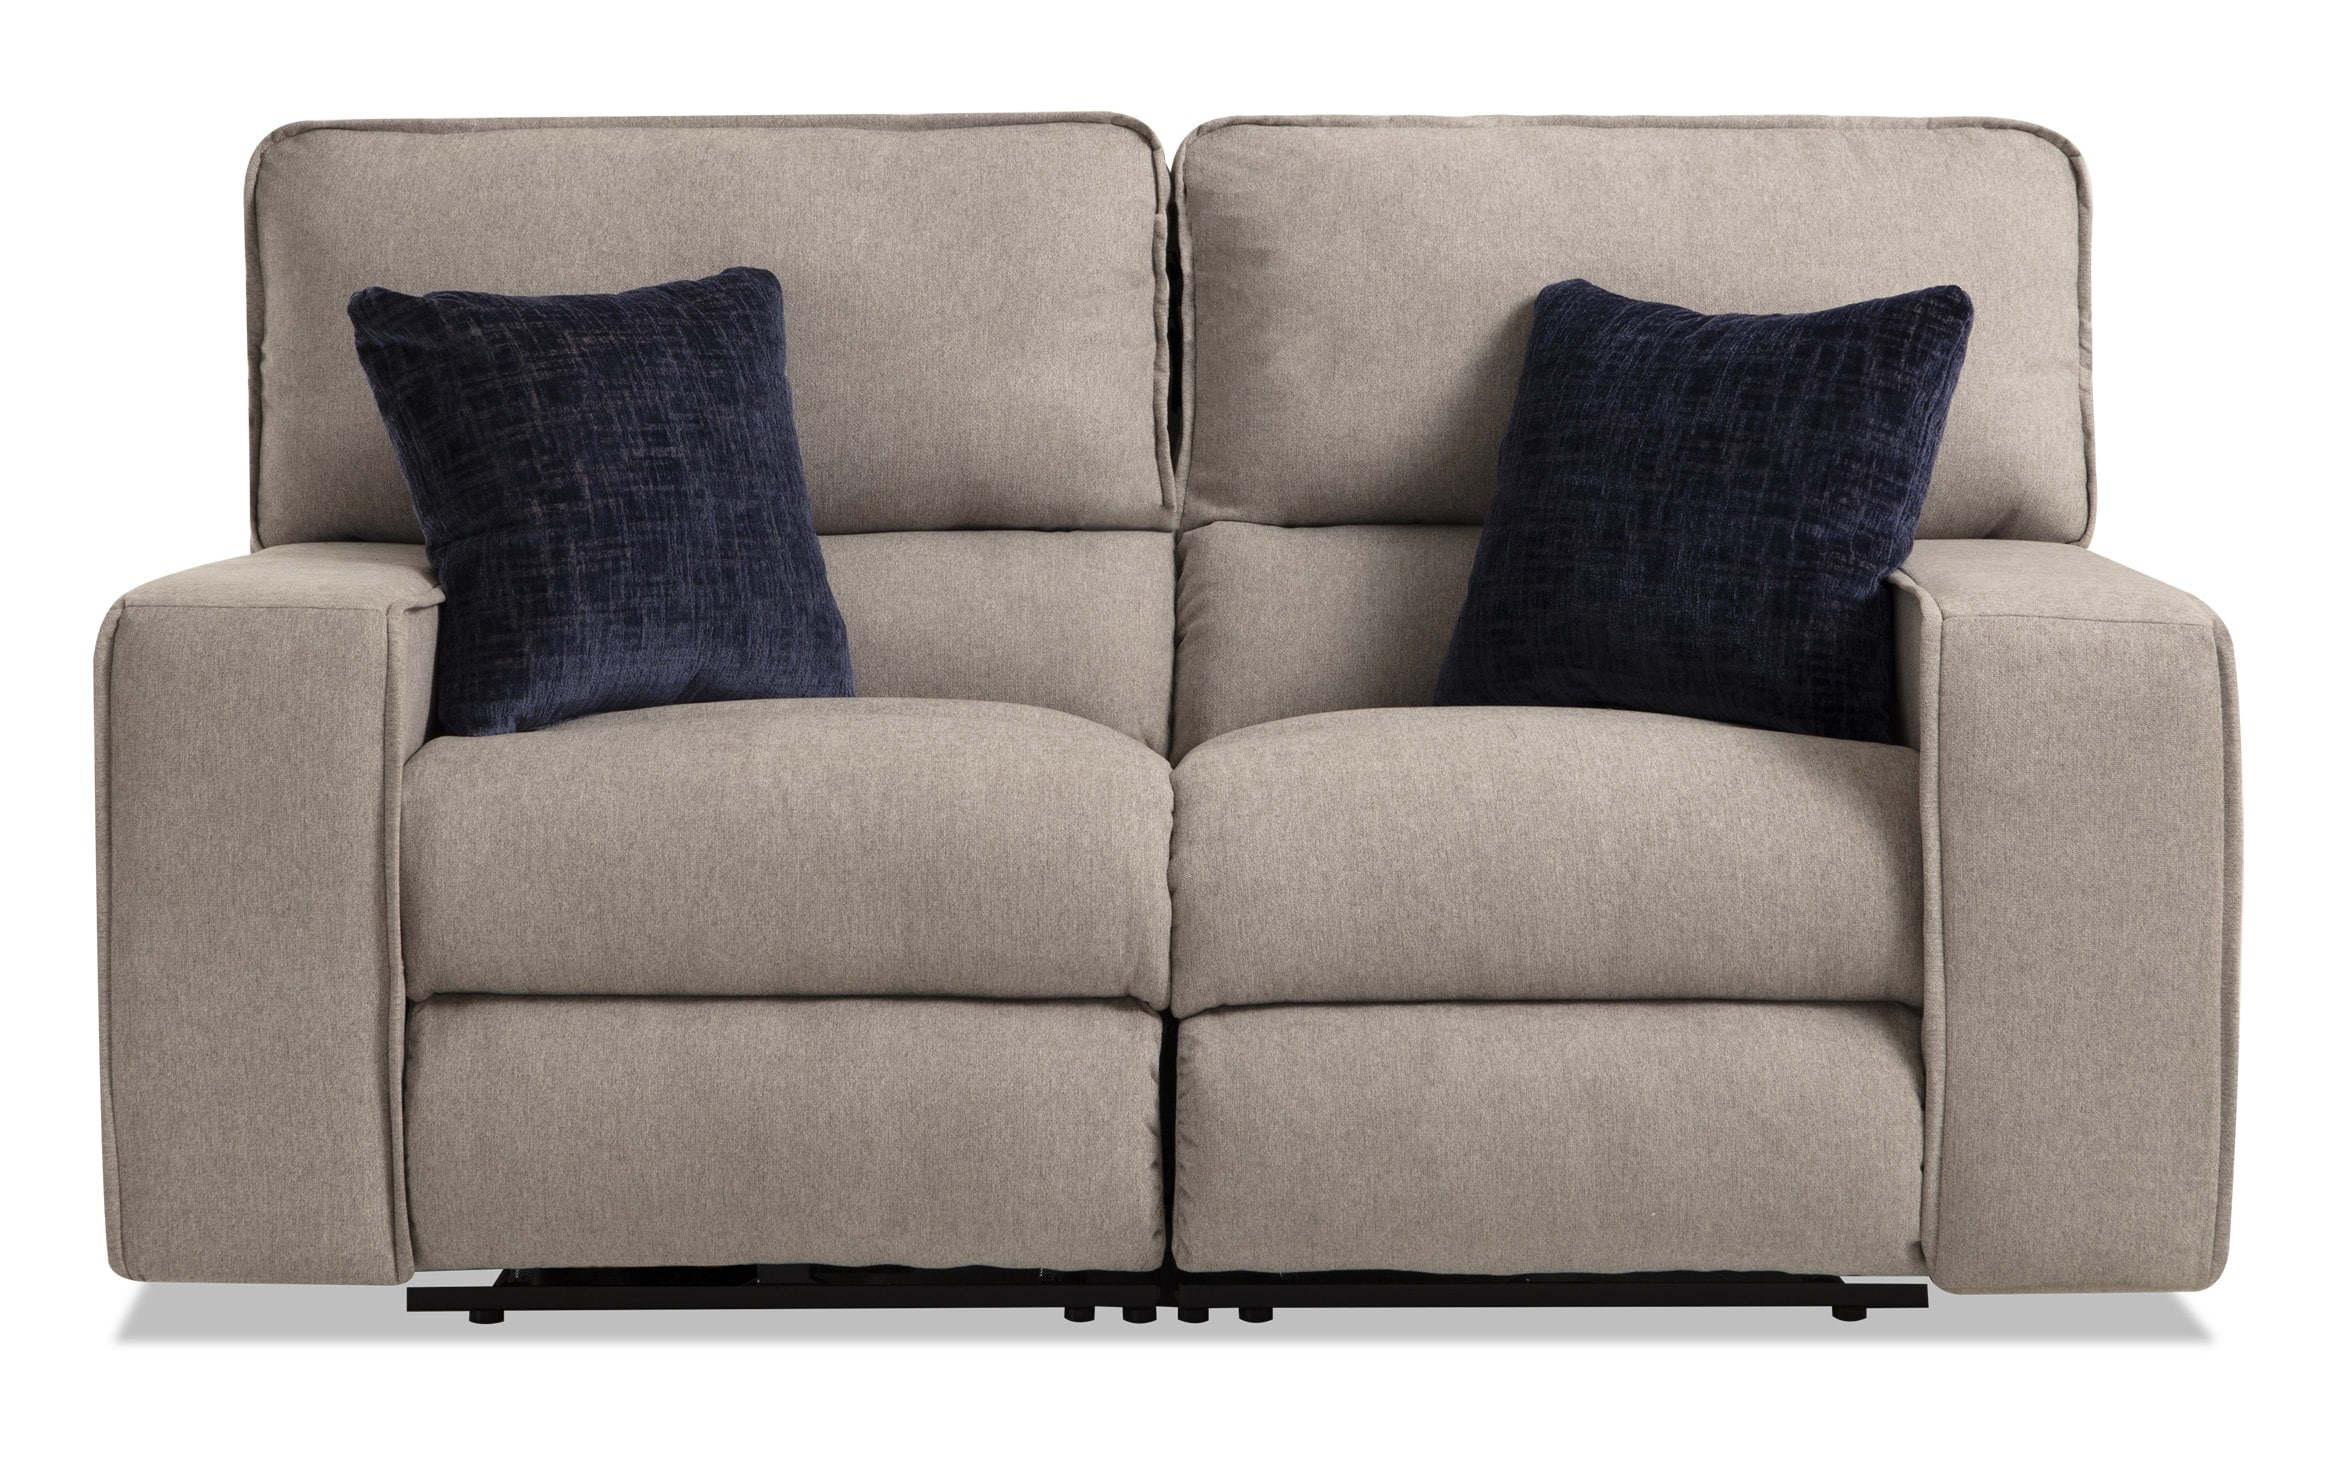 Bobs Furniture Reclining Sofas – Latest Sofa Pictures Within Trailblazer Gray Leather Power Reclining Sofas (View 10 of 15)